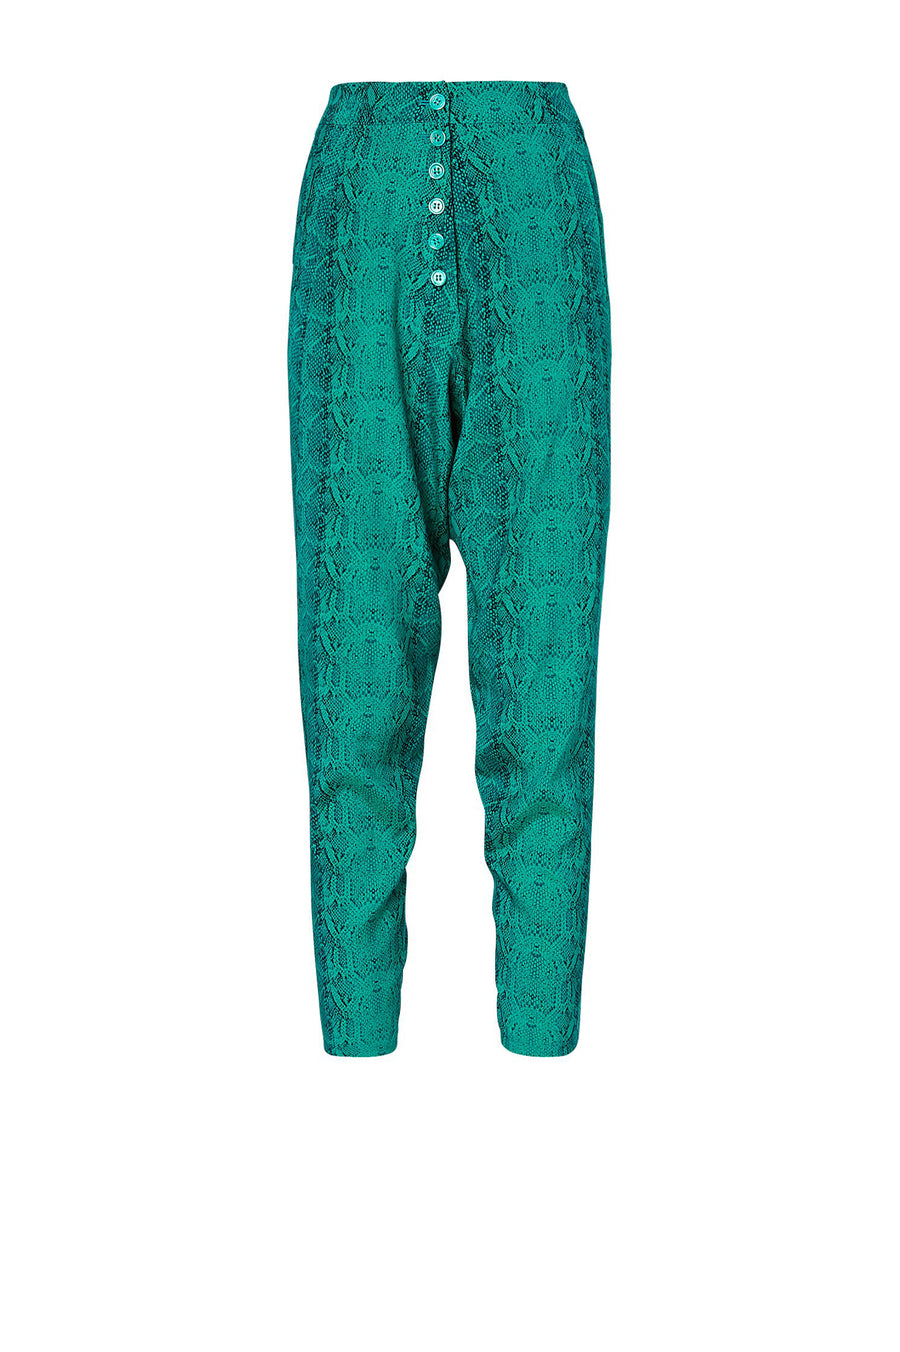 SILK LOW RISE BUTTON PANT EMERALD